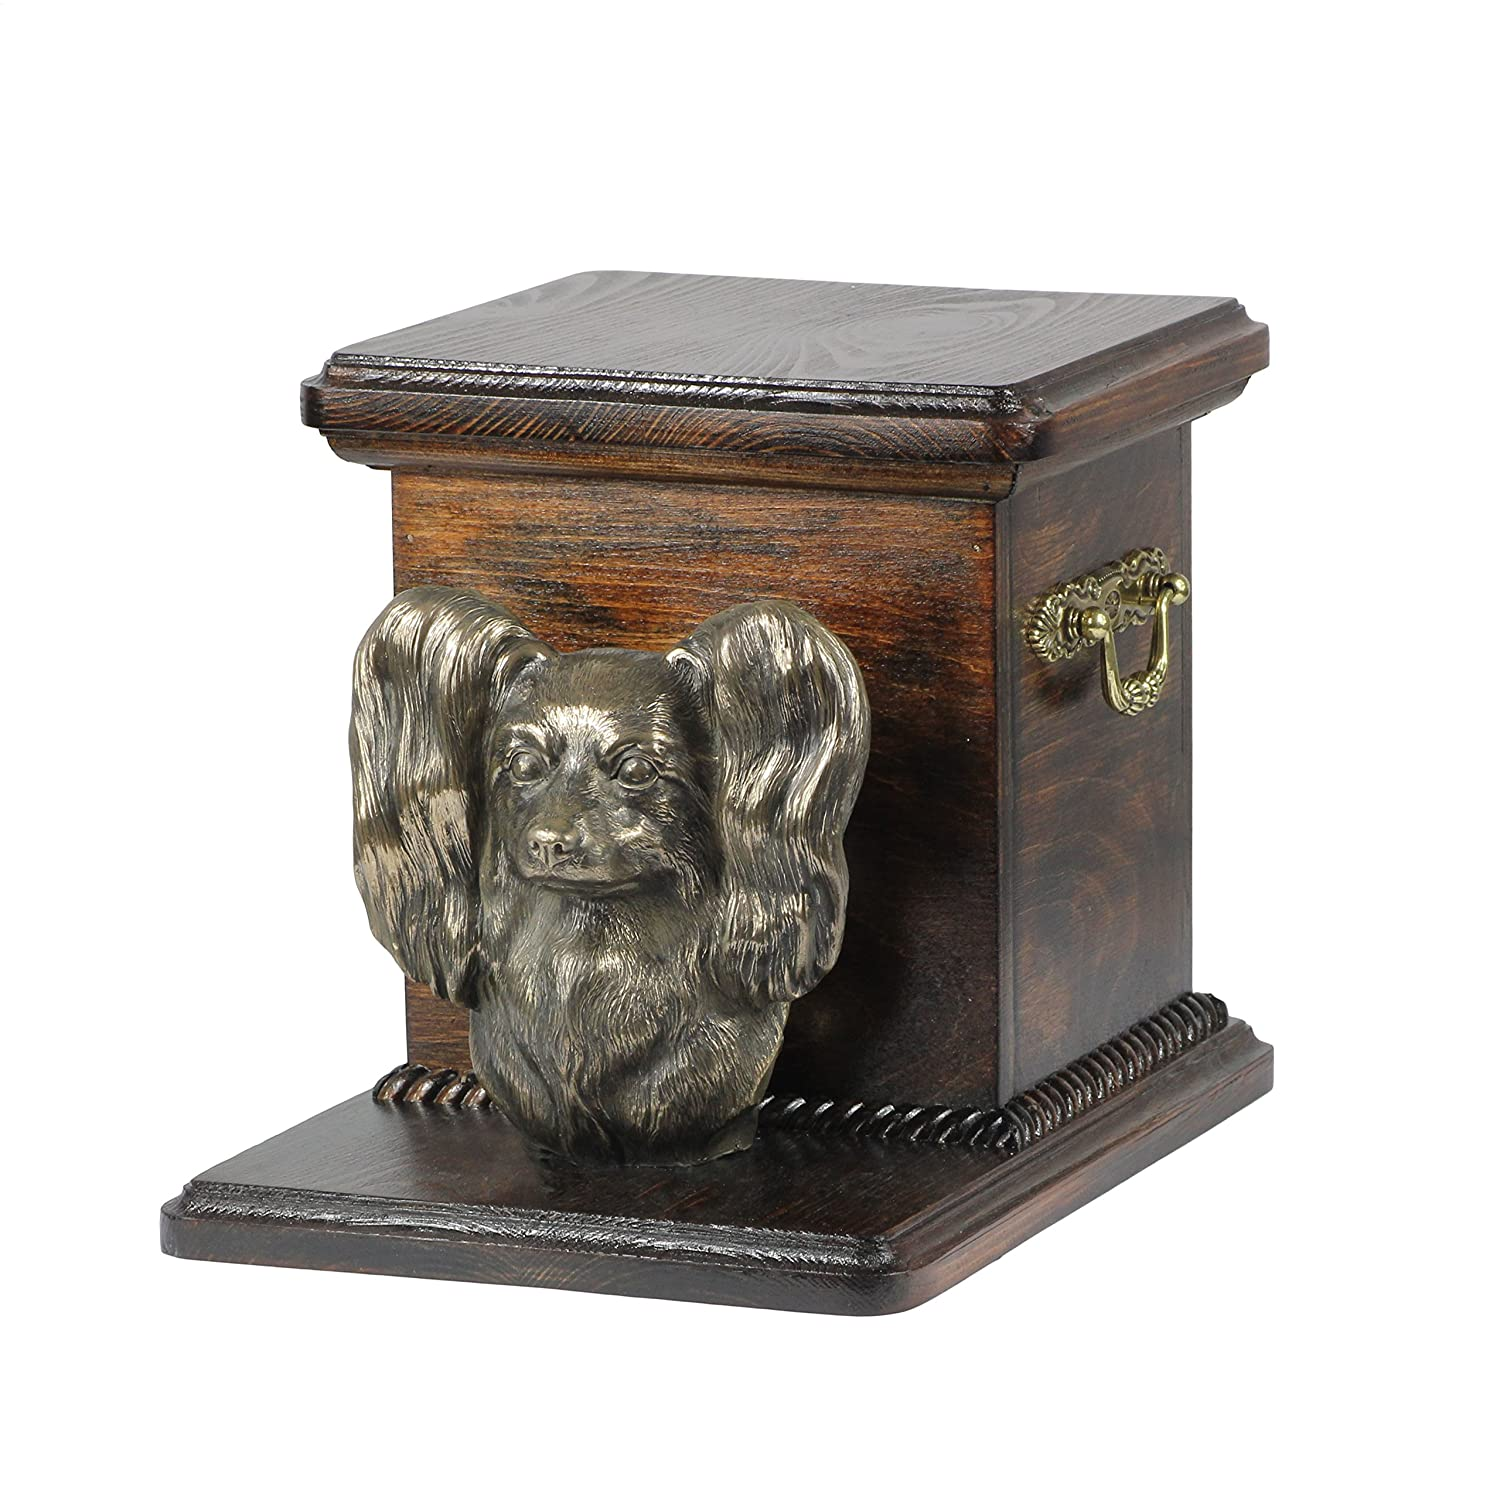 Papillon, memorial, urn for dog's ashes, with dog statue, ArtDog